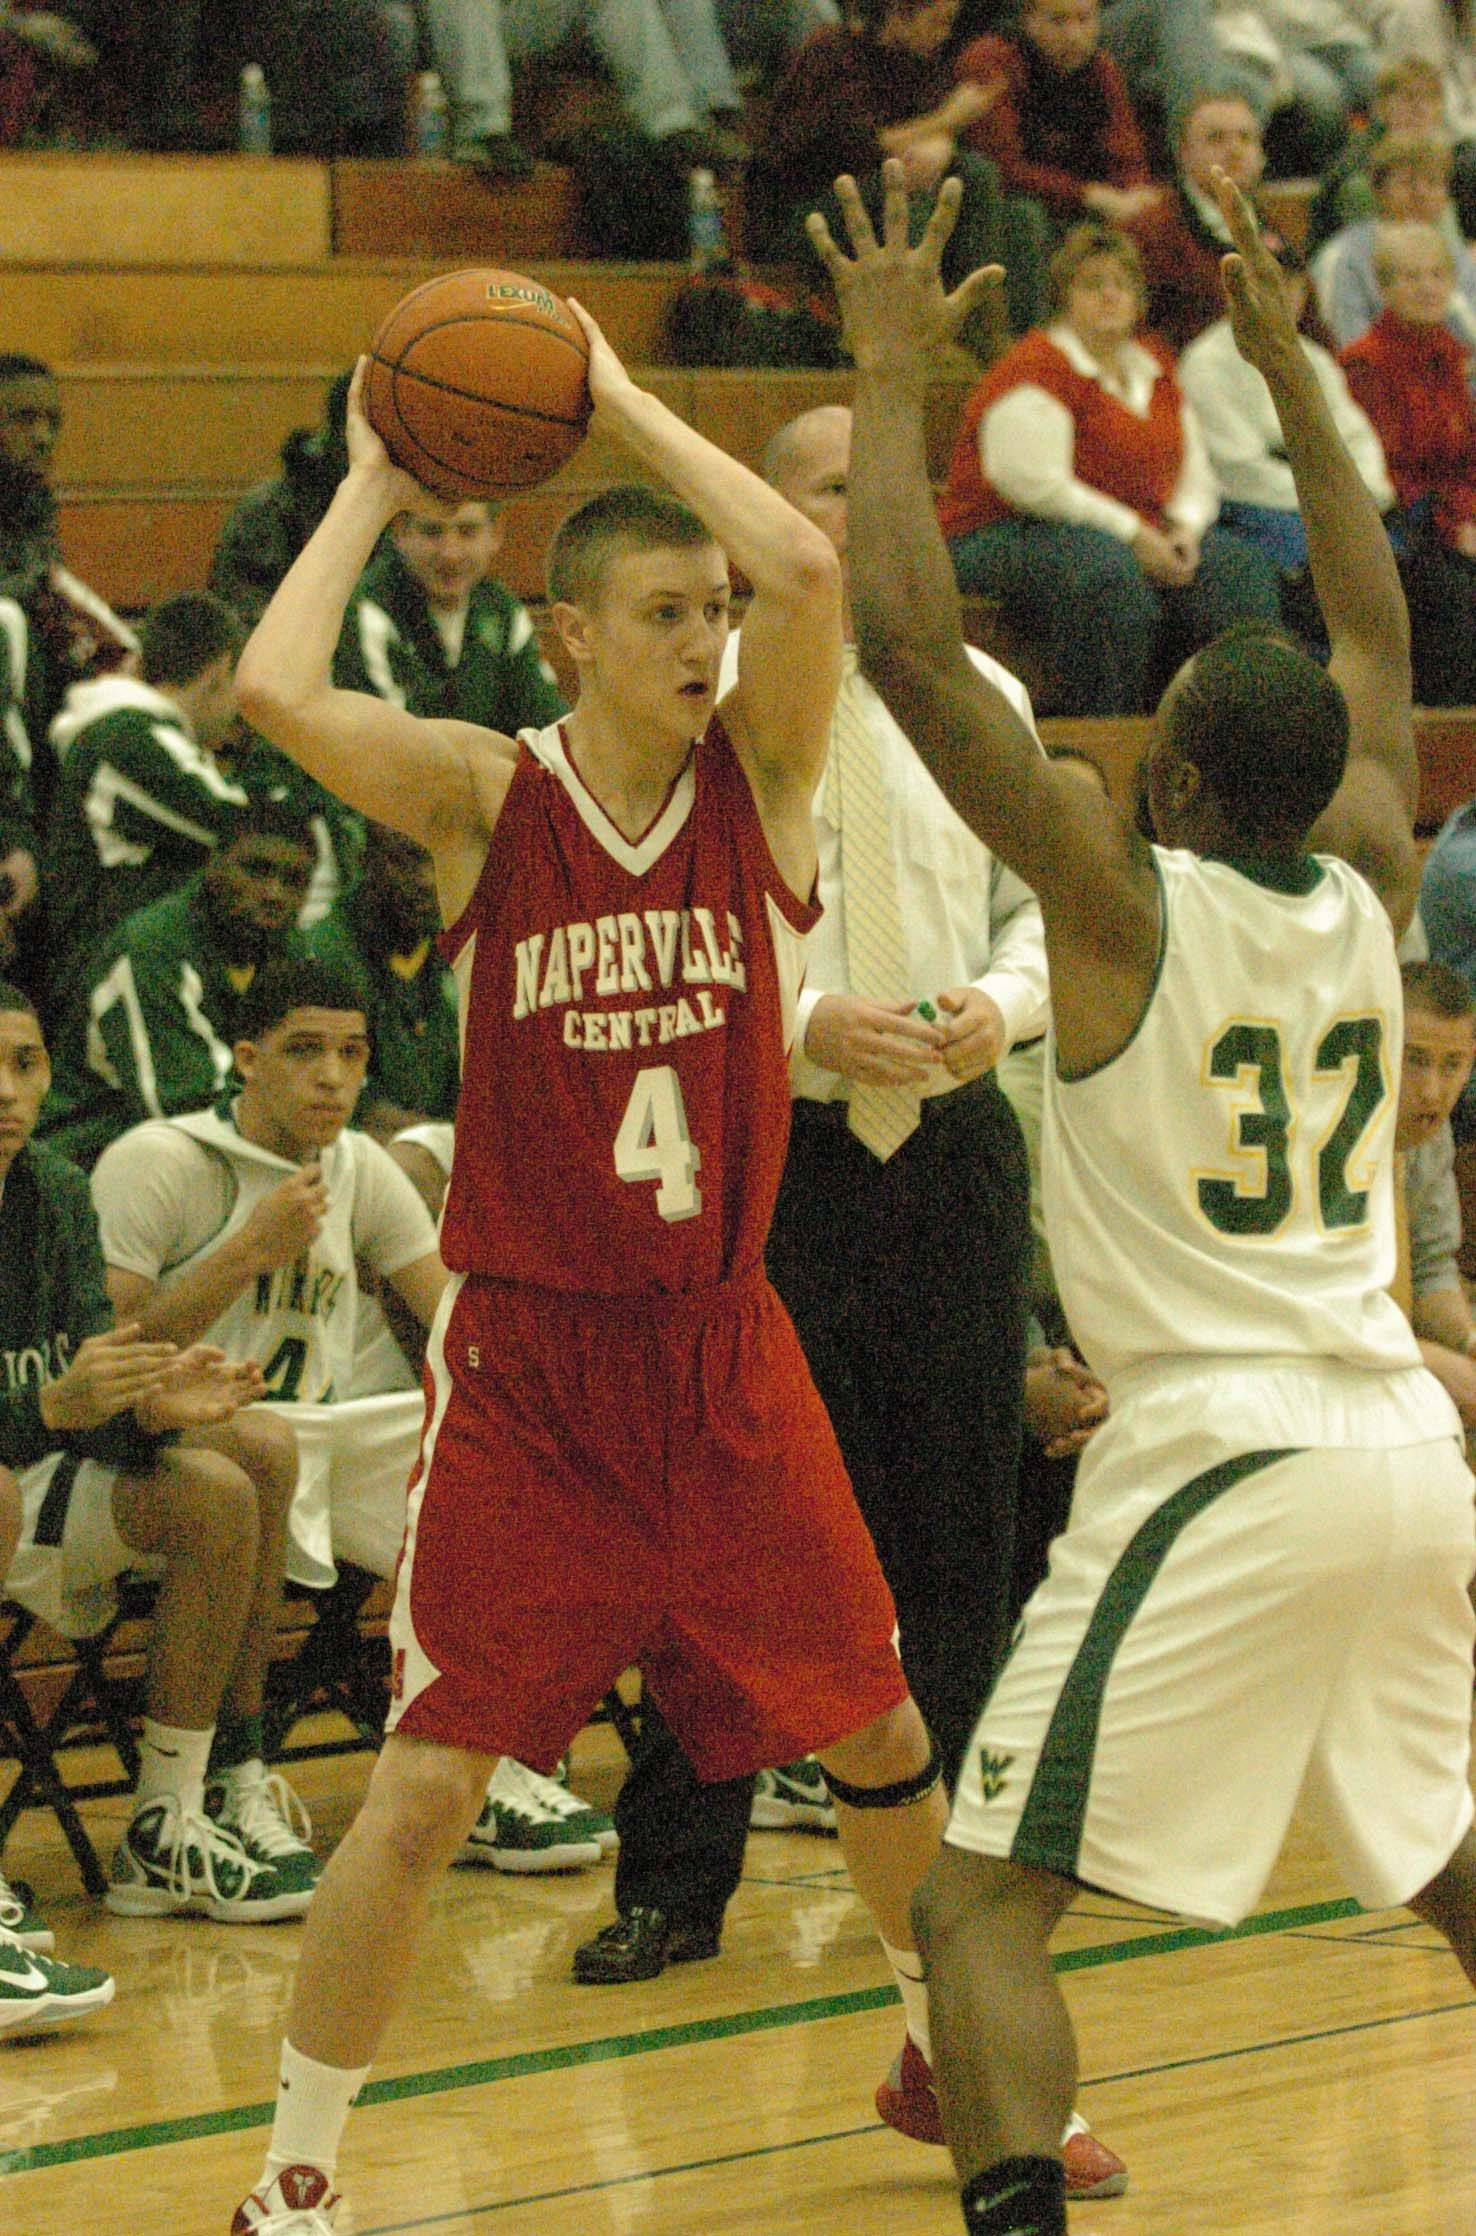 Alex Renn of Naperville Central looks to pass over Jakobi Johnson of Waubonsie Valley during game action Saturday.